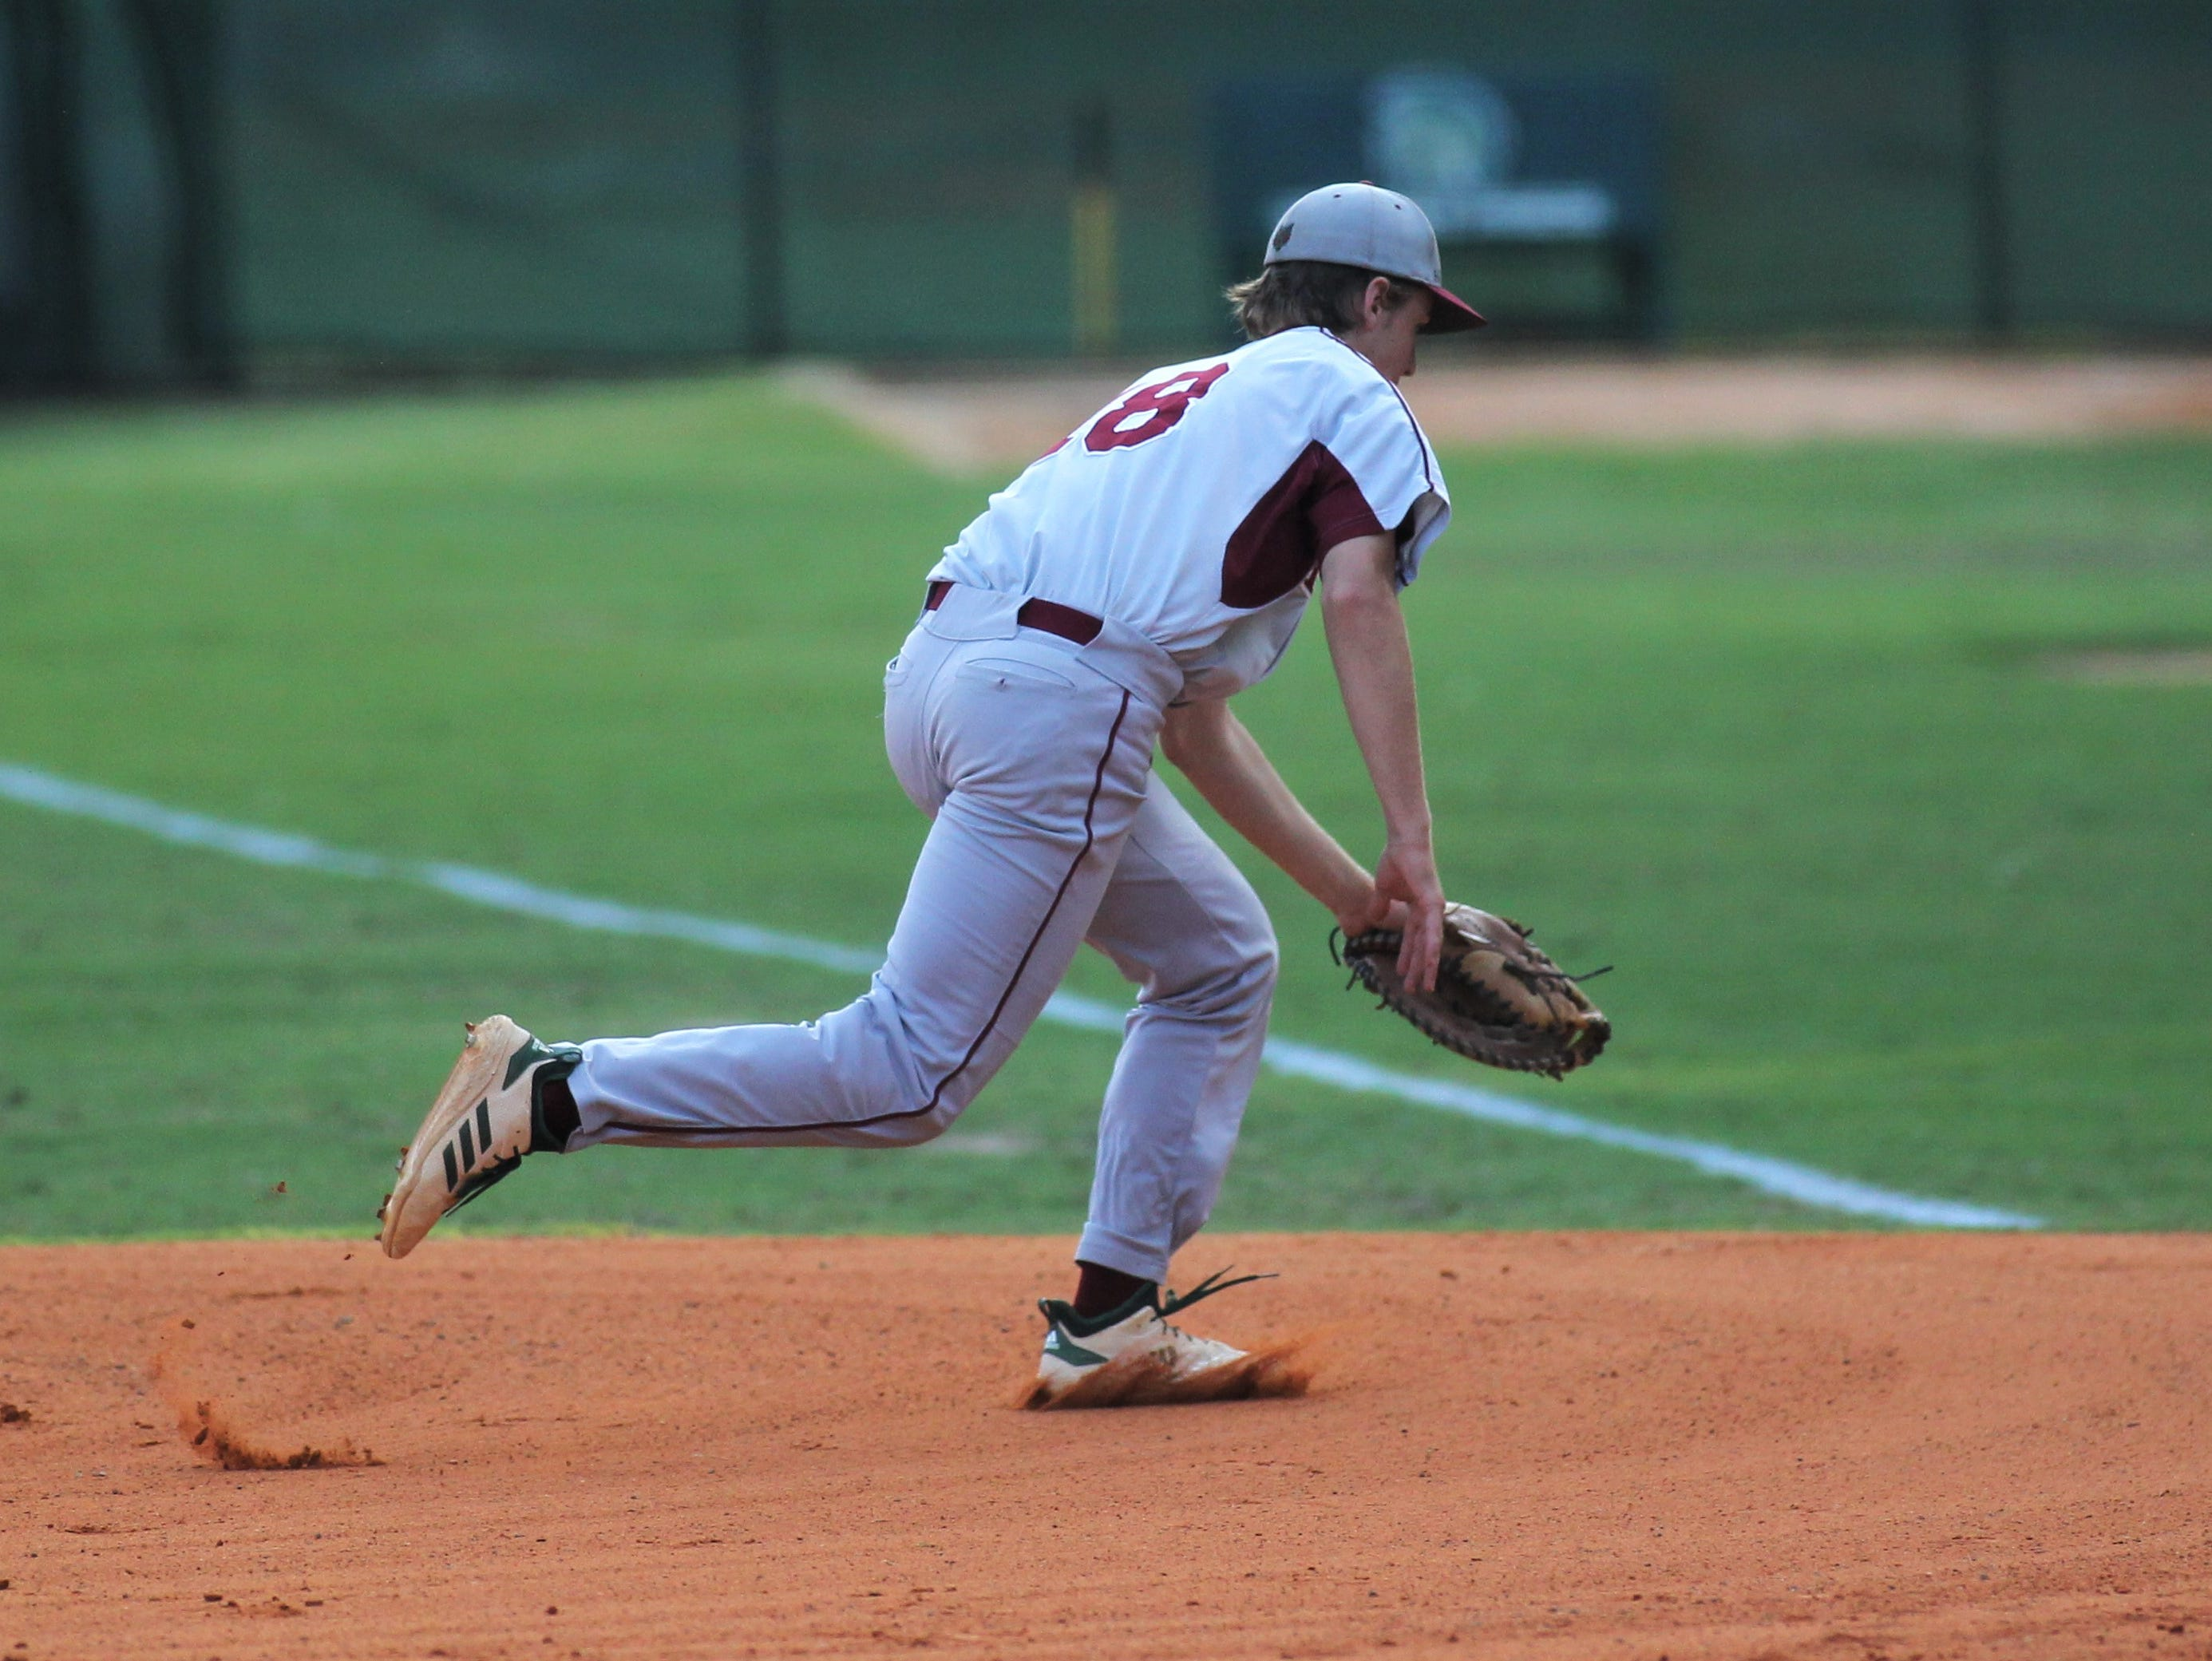 Chiles first baseman William Kilduff has a ball kick away for an error as Lincoln baseball beat Chiles 5-4  in 10 innings during a District 2-8A championship game on Thursday, May 9, 2019.